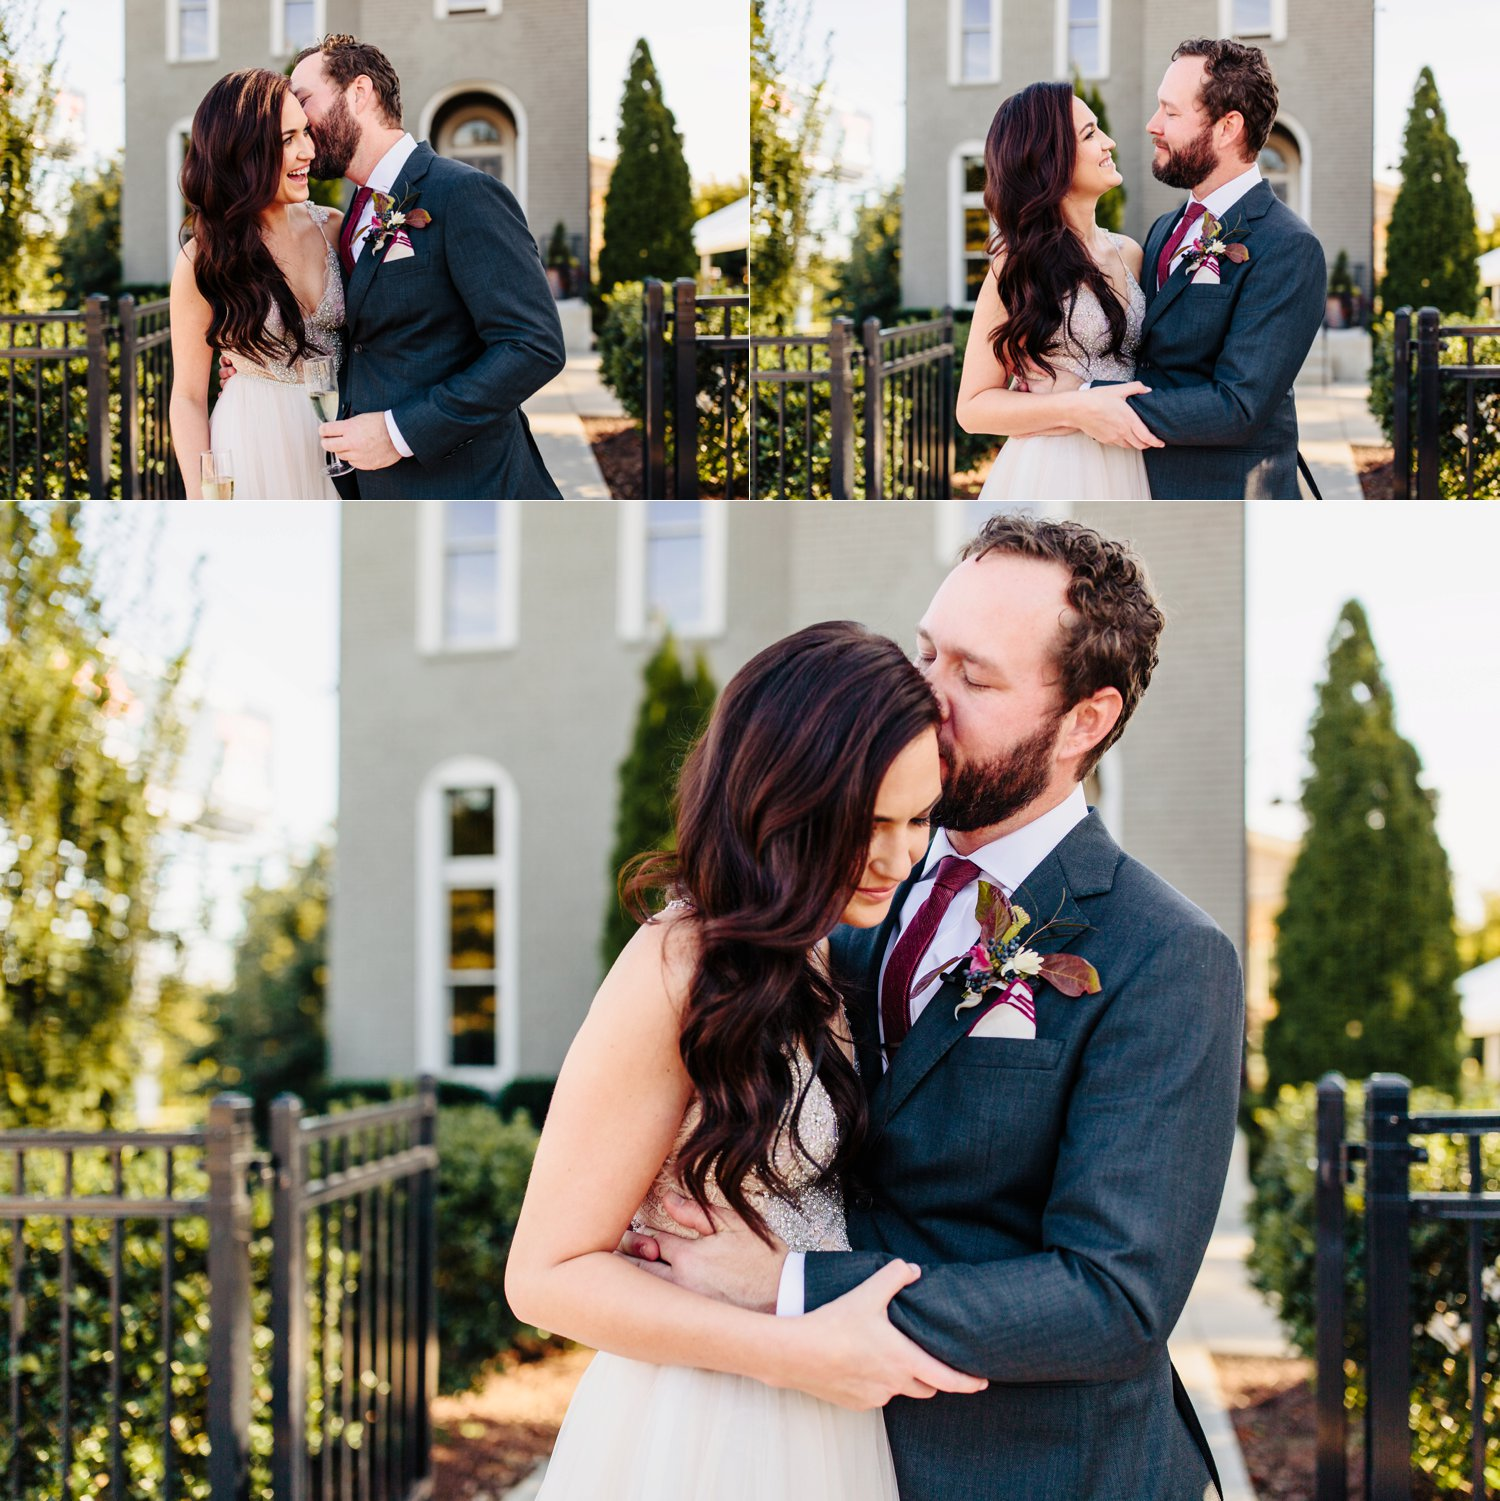 CK-Photo-Nashville-engagement-wedding-photographer-the-cordelle_0008.jpg